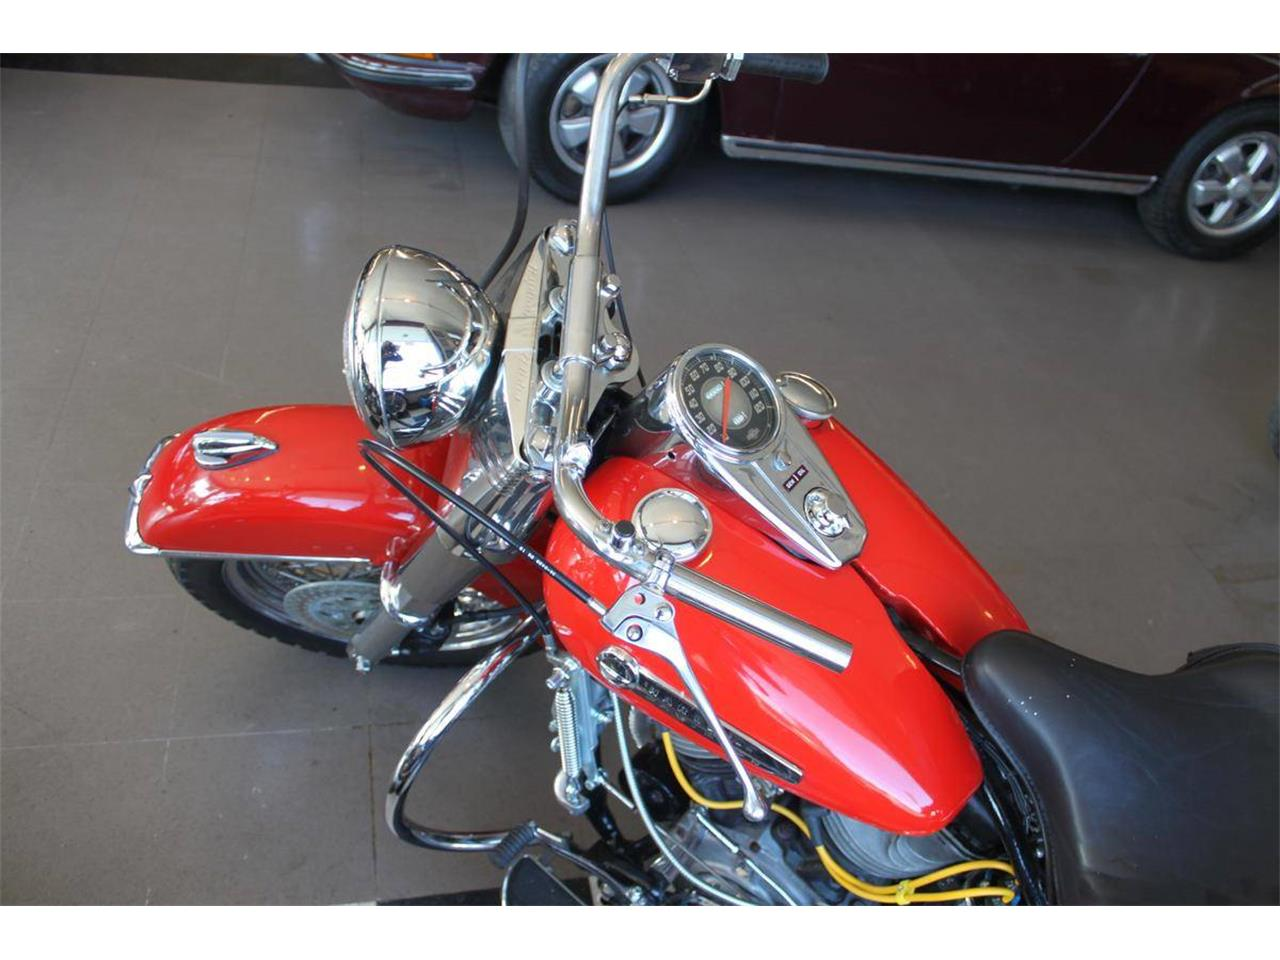 1950 Harley-Davidson Motorcycle for sale in Carnation, WA – photo 9